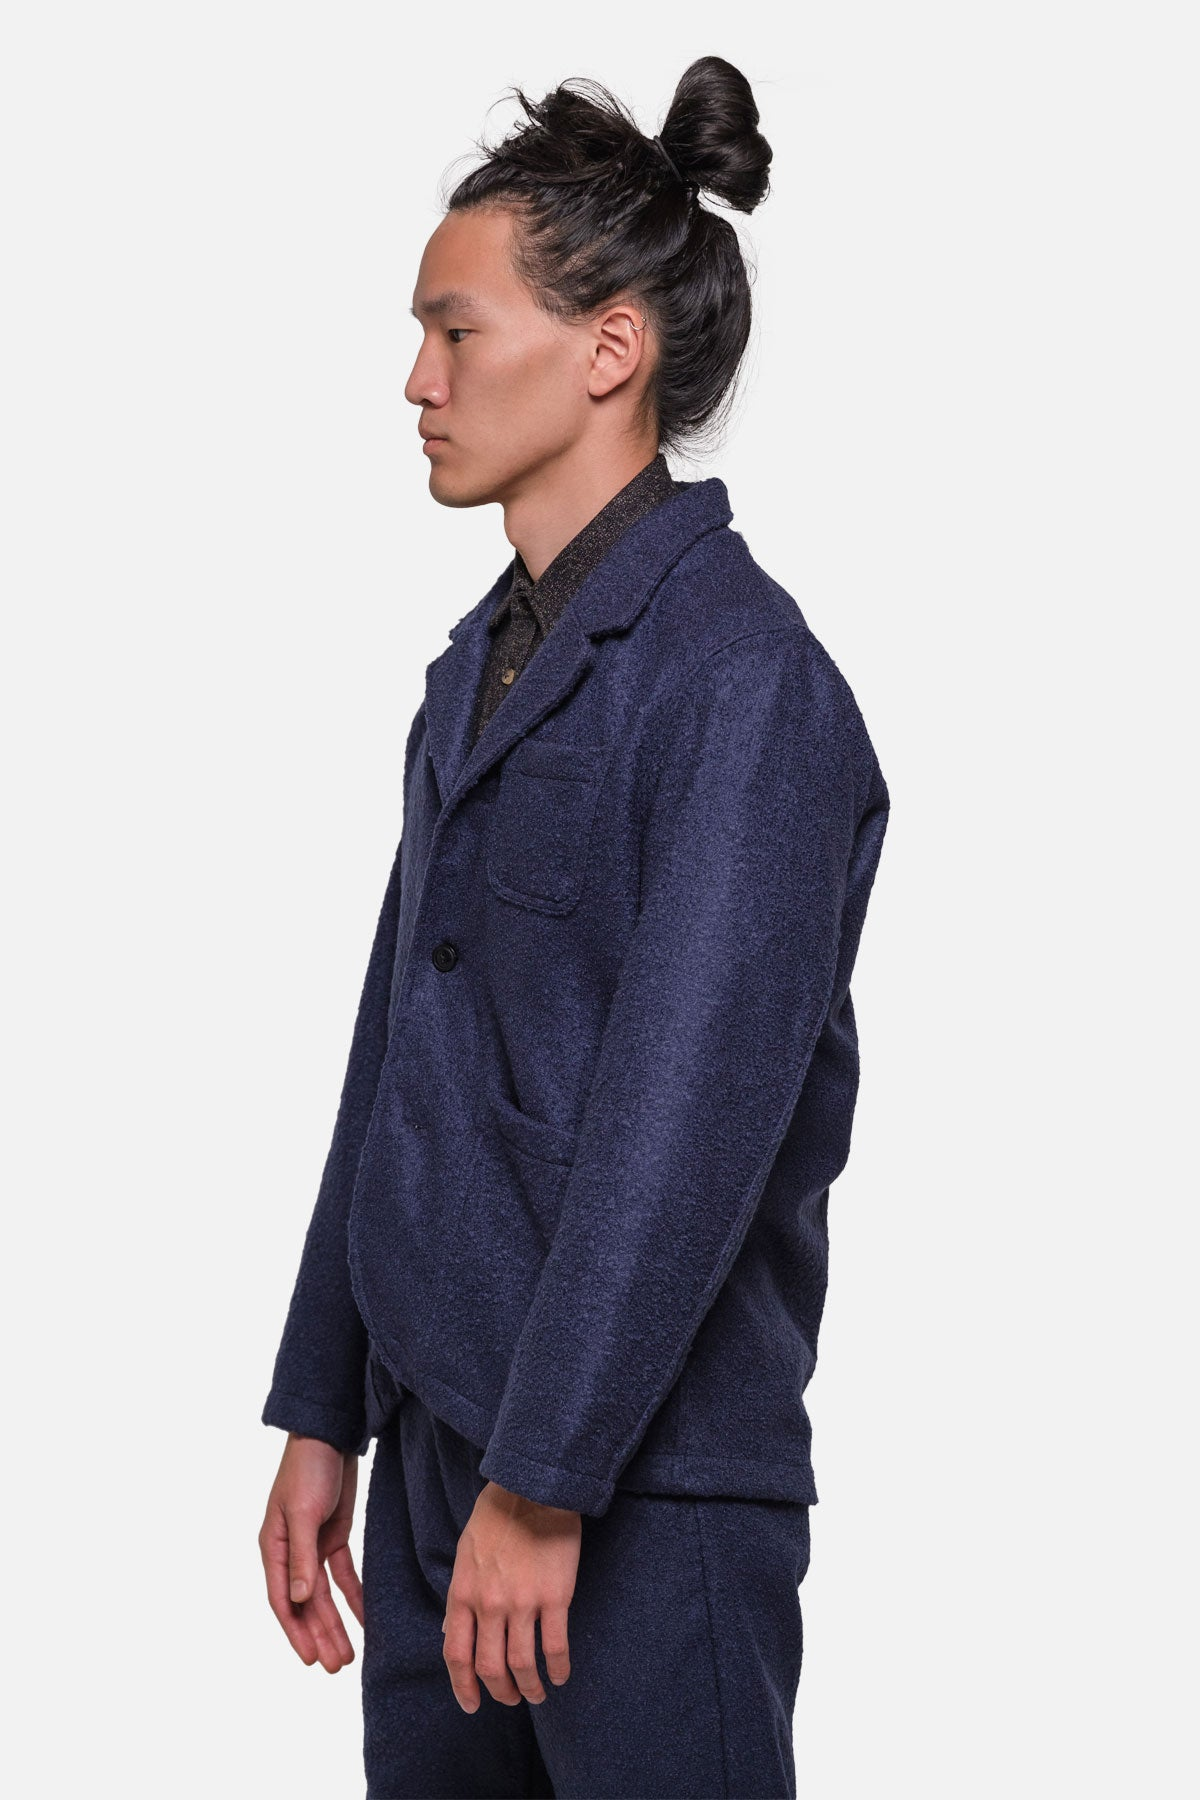 CASS JACKET IN NAVY BOILED WOOL - Fortune Goods